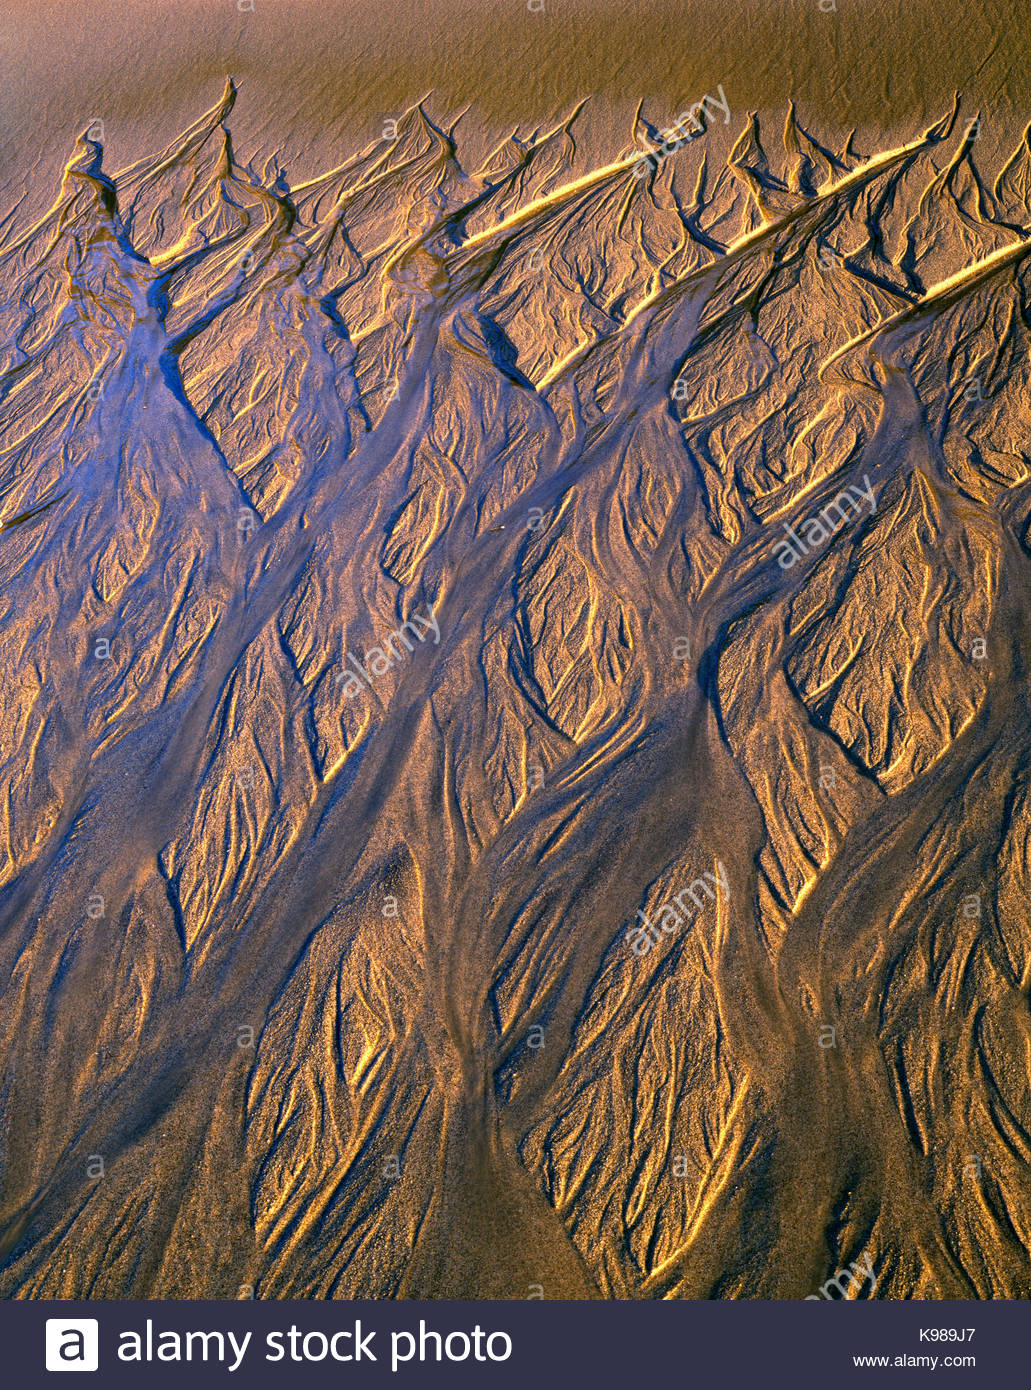 Sunset Light on Sand Pattern Left by Receding Tide, Phillip Burton Wilderness, Point Reyes National Seashore, California - Stock Image